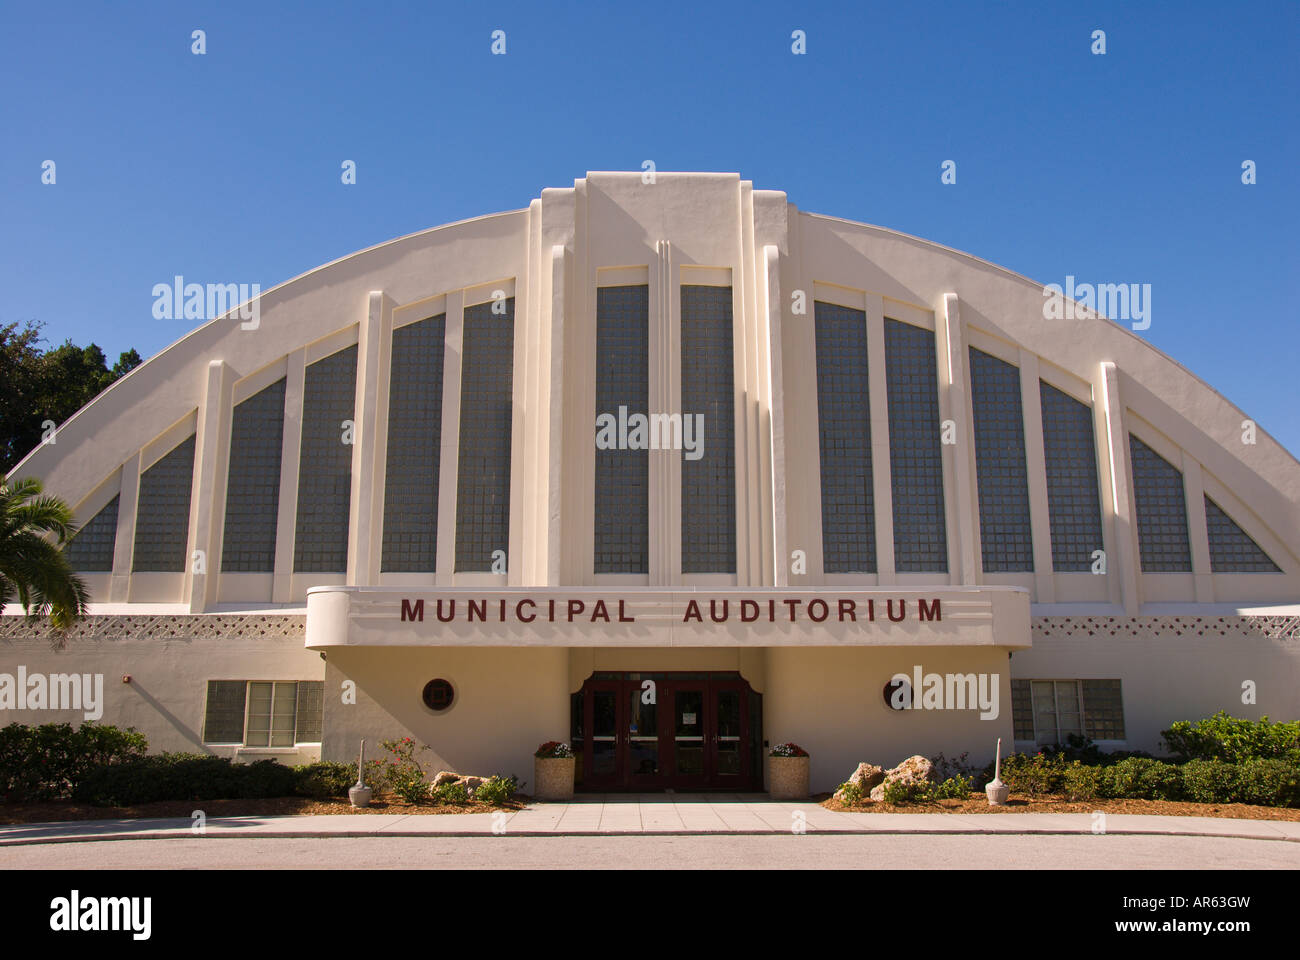 Style Moderne Stock Photos & Style Moderne Stock Images - Alamy